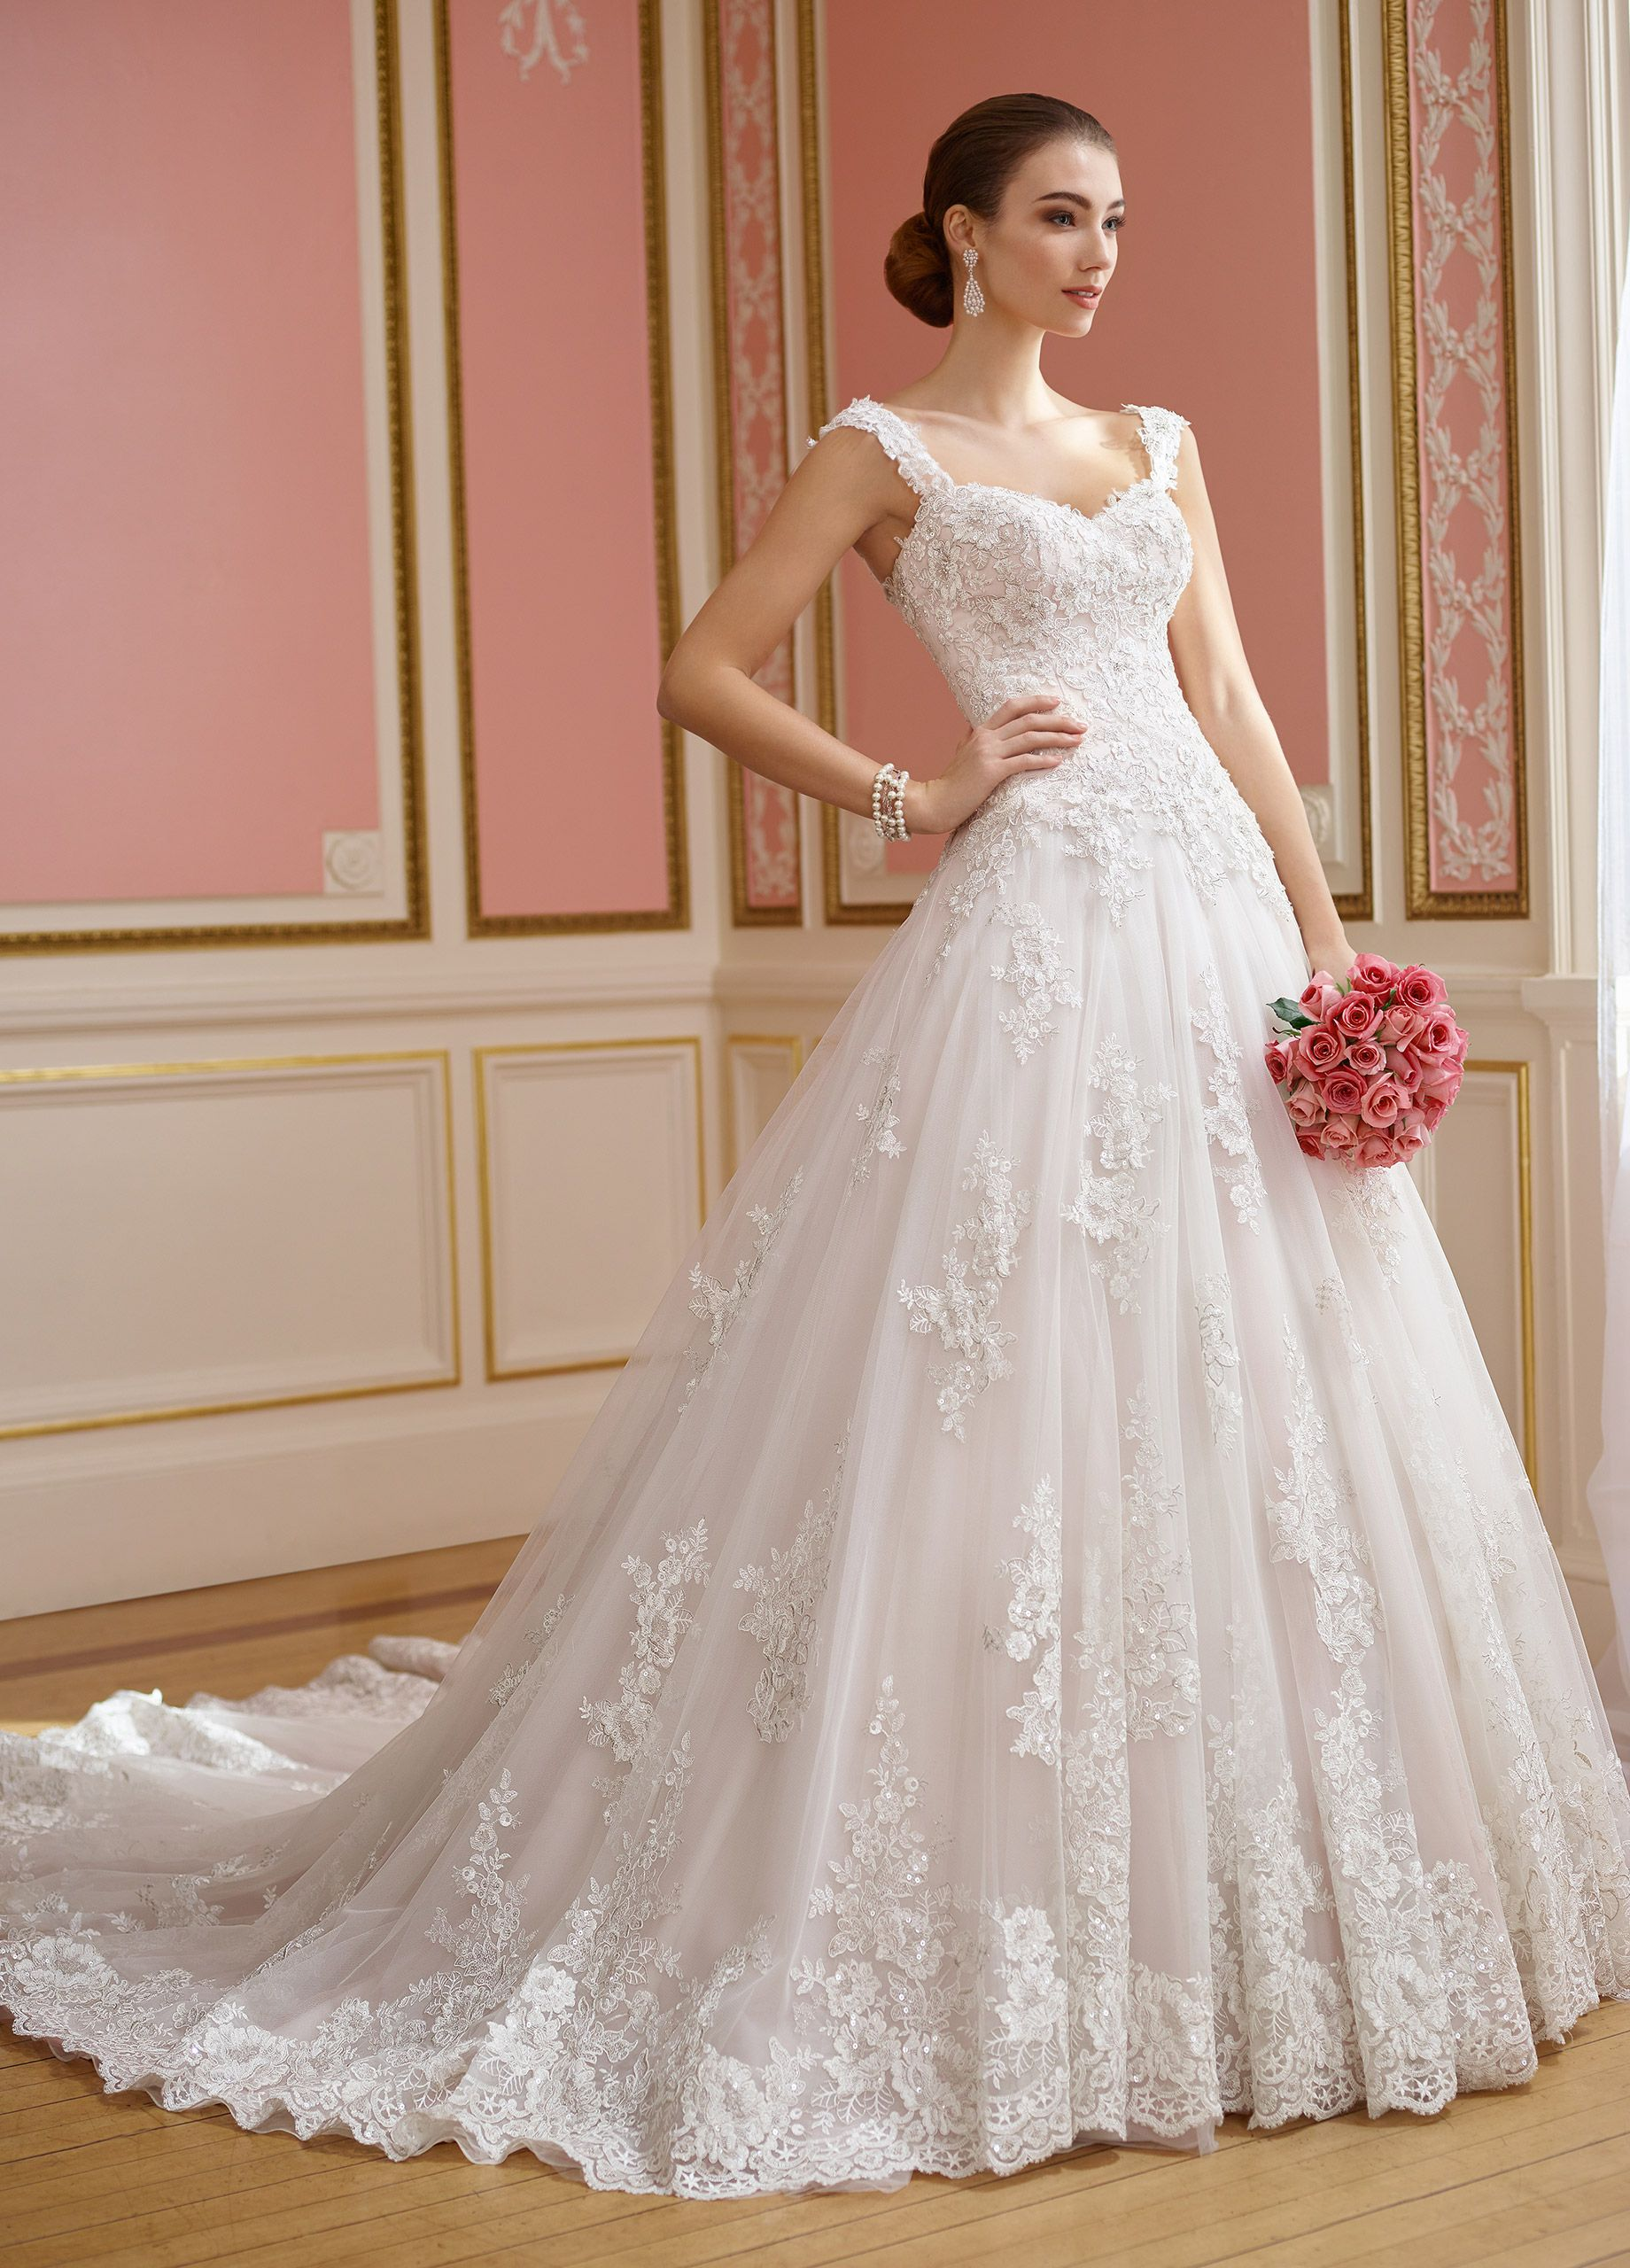 Lace Tulle Ball Gown Wedding Dress With Sleeves 217210 Nellie